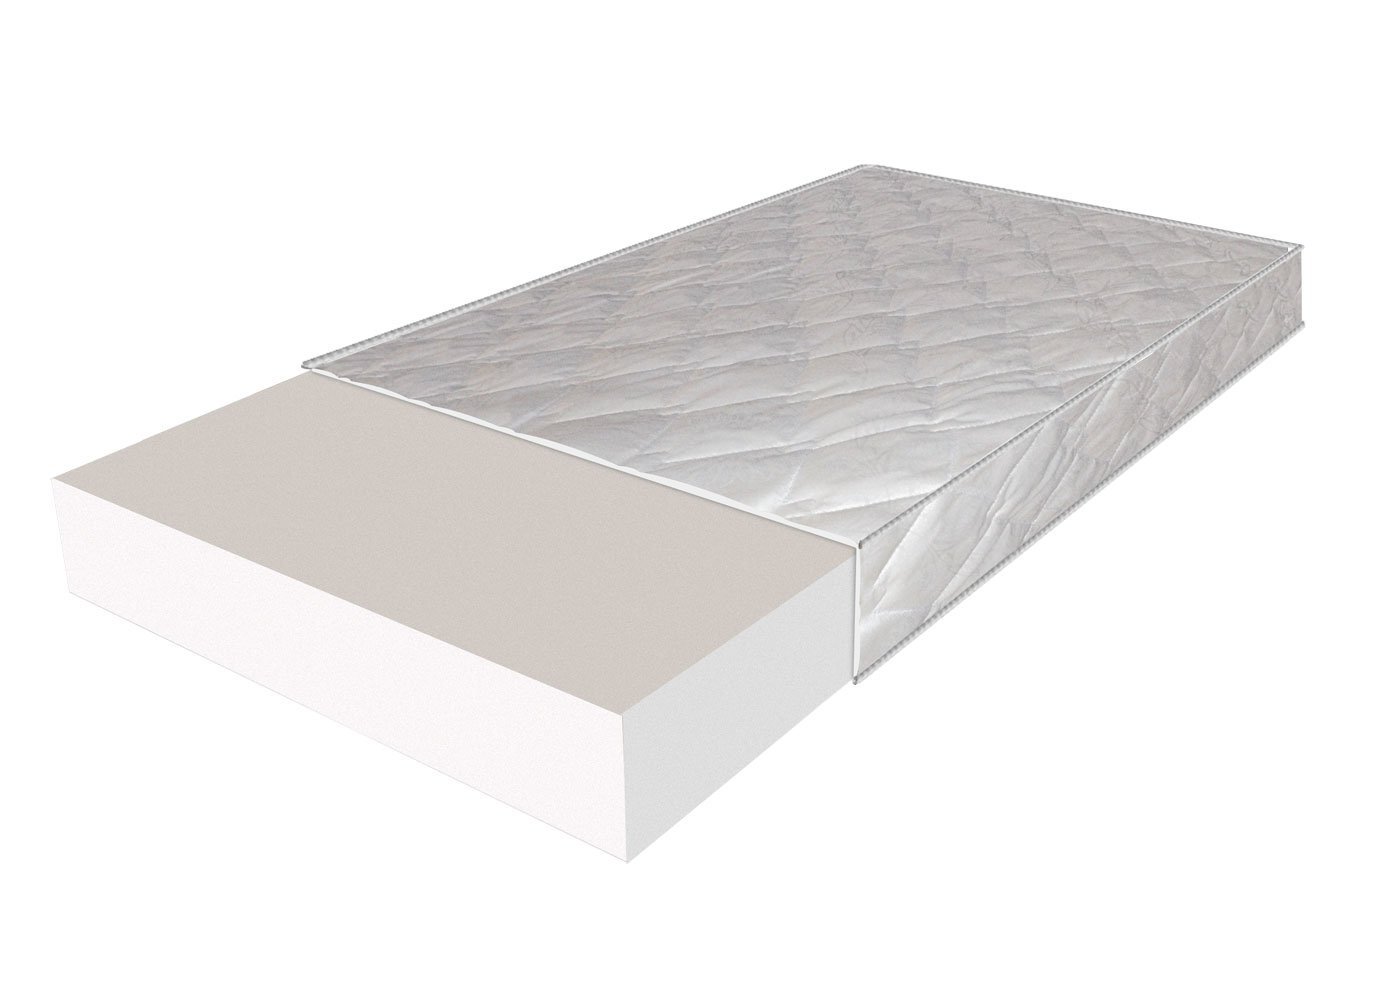 matras_largo_slim_1